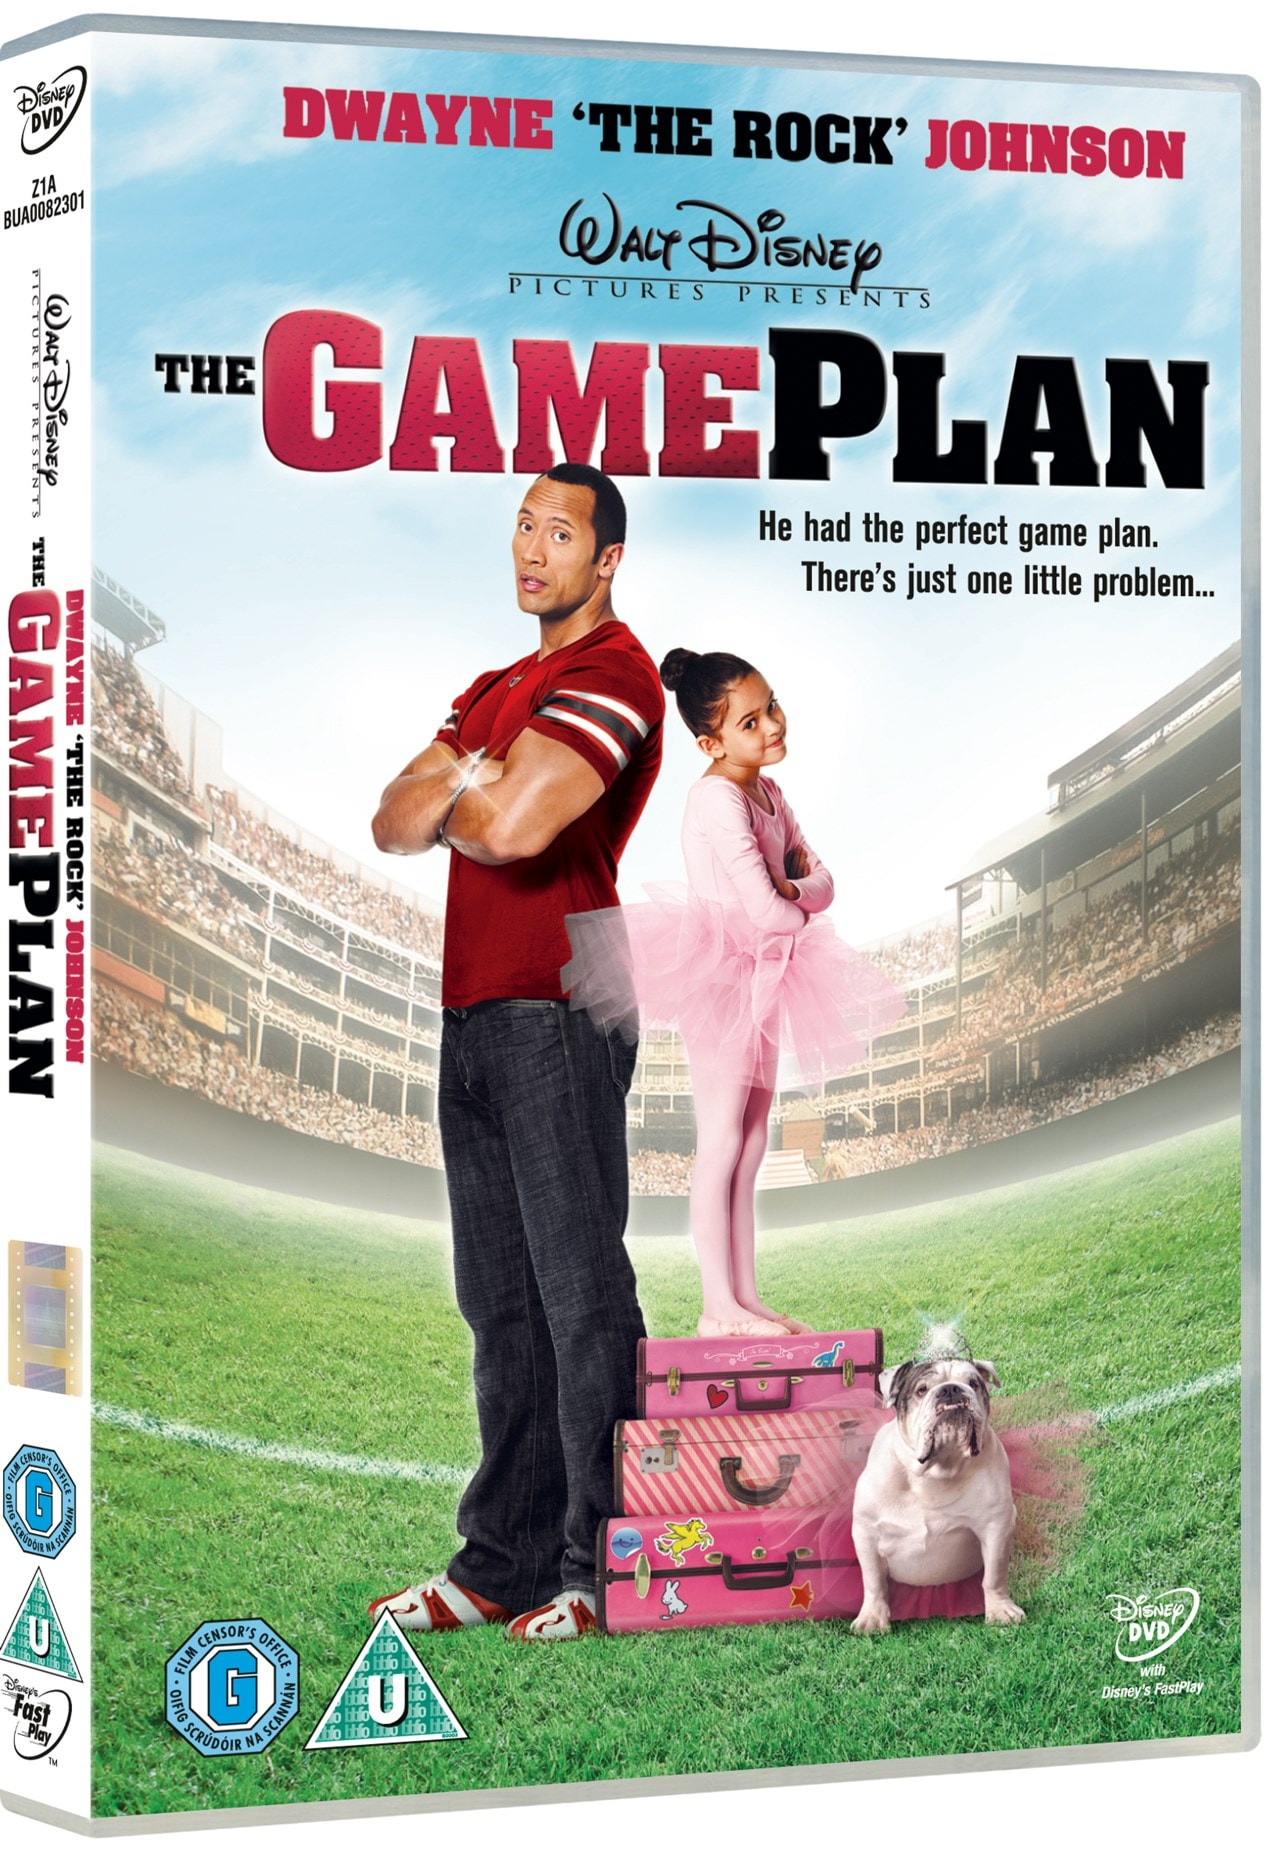 The Game Plan - 2